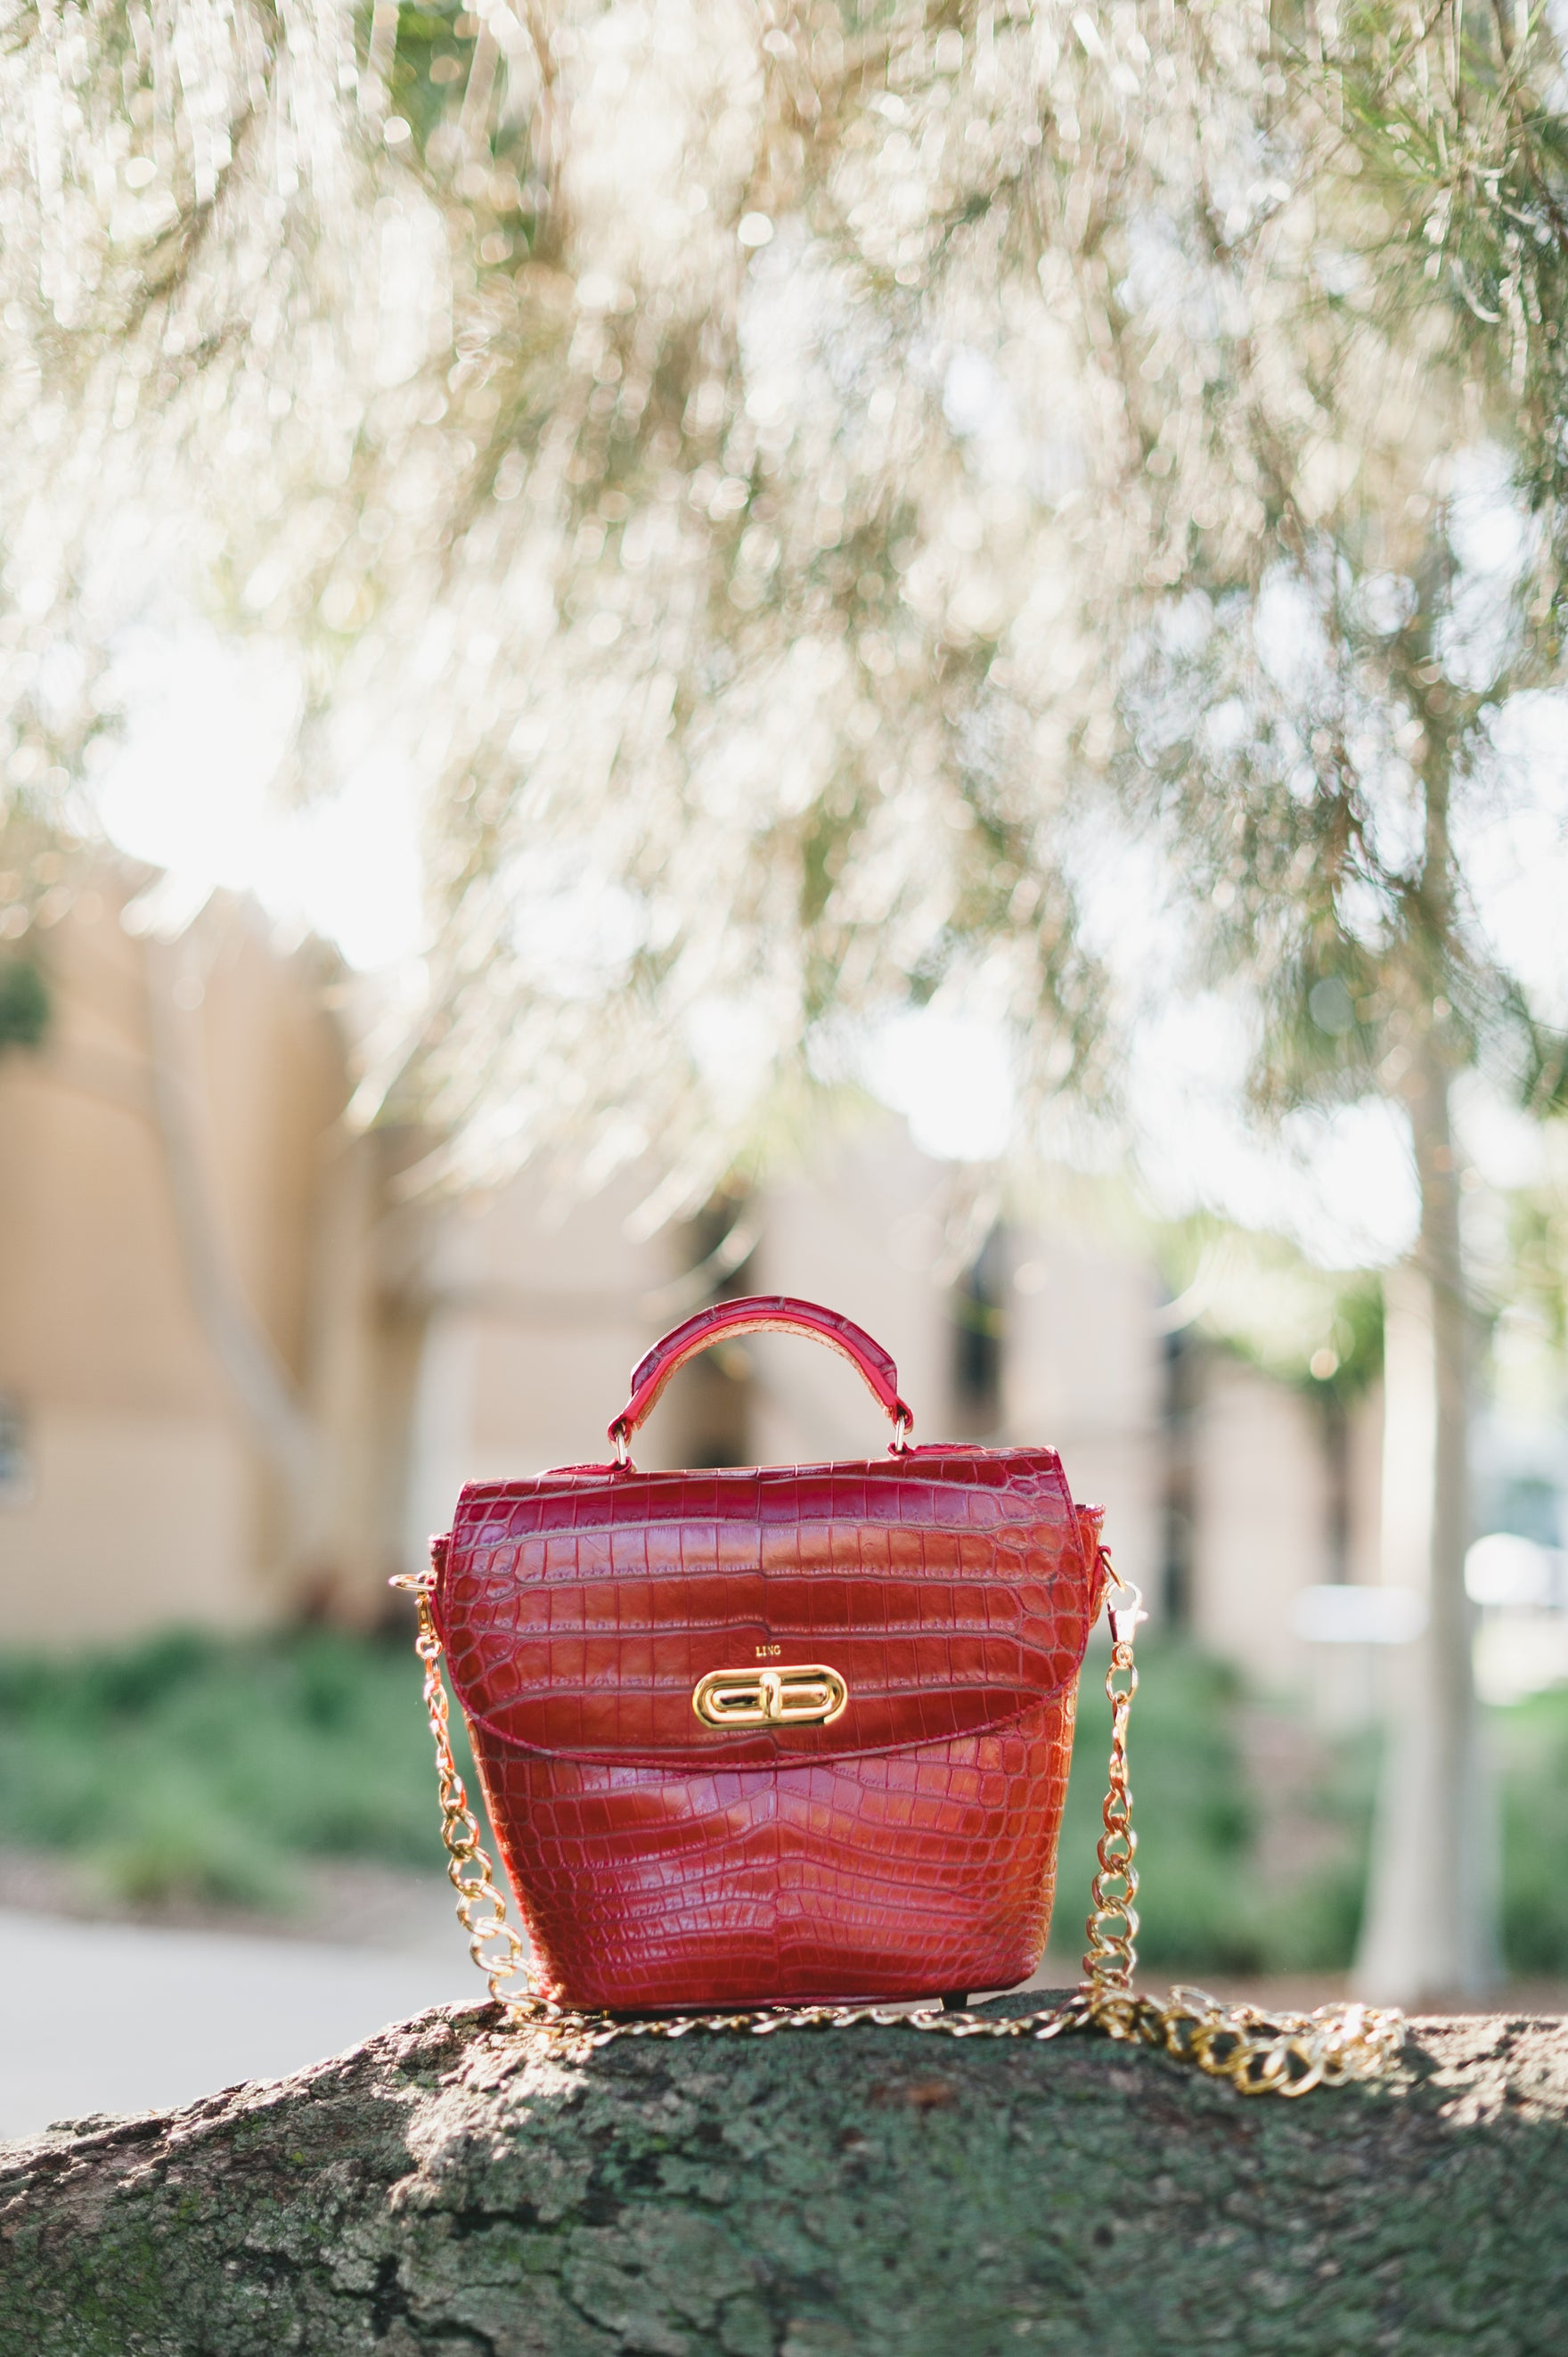 LIN8 luxury leather goods made with genuine crocodile leather. Buckleberry bag in crocodile leather.